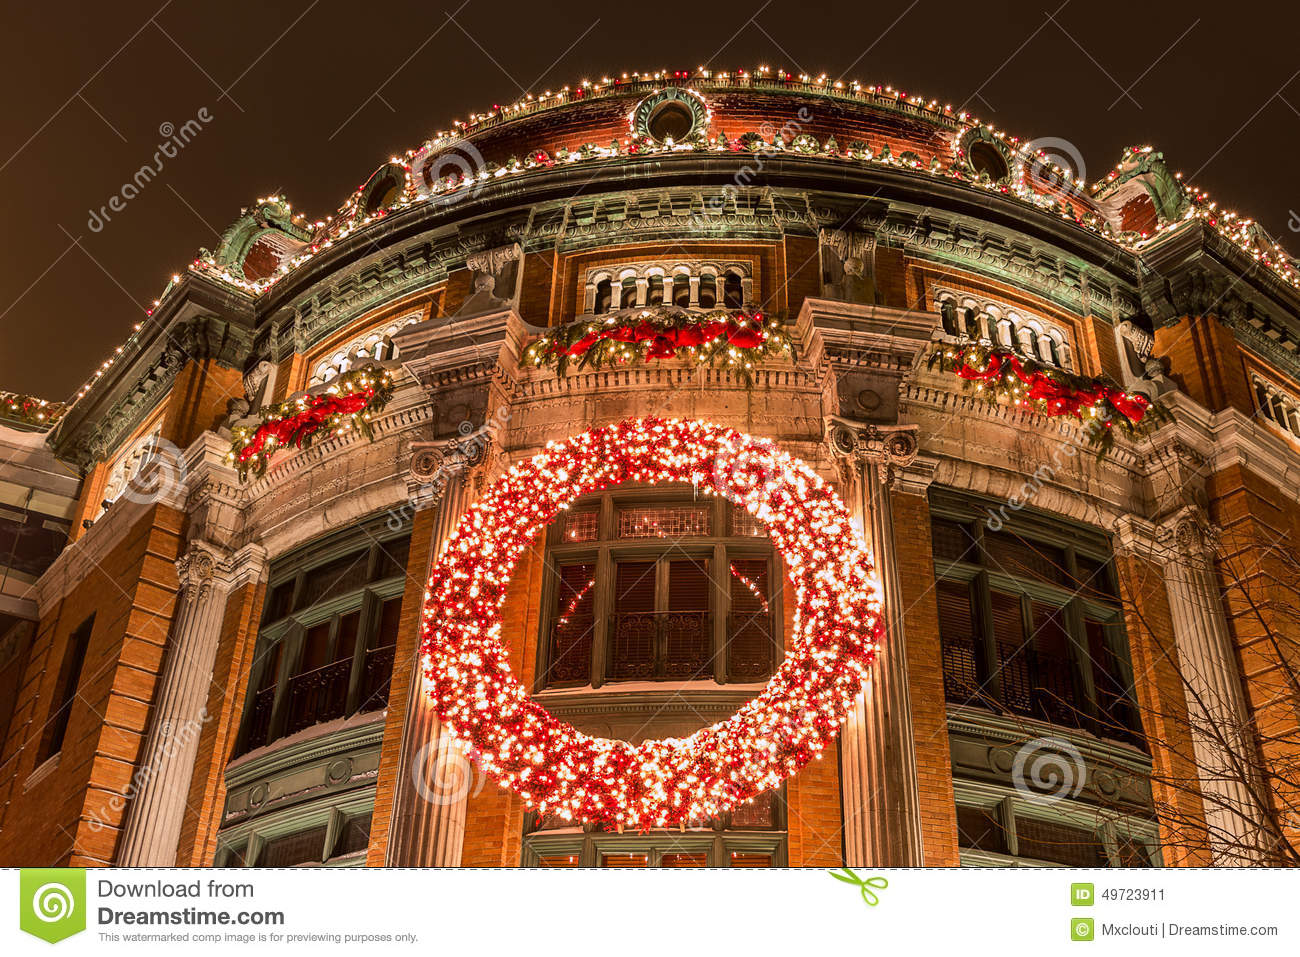 download merry christmas from quebec city stock image image of building city 49723911